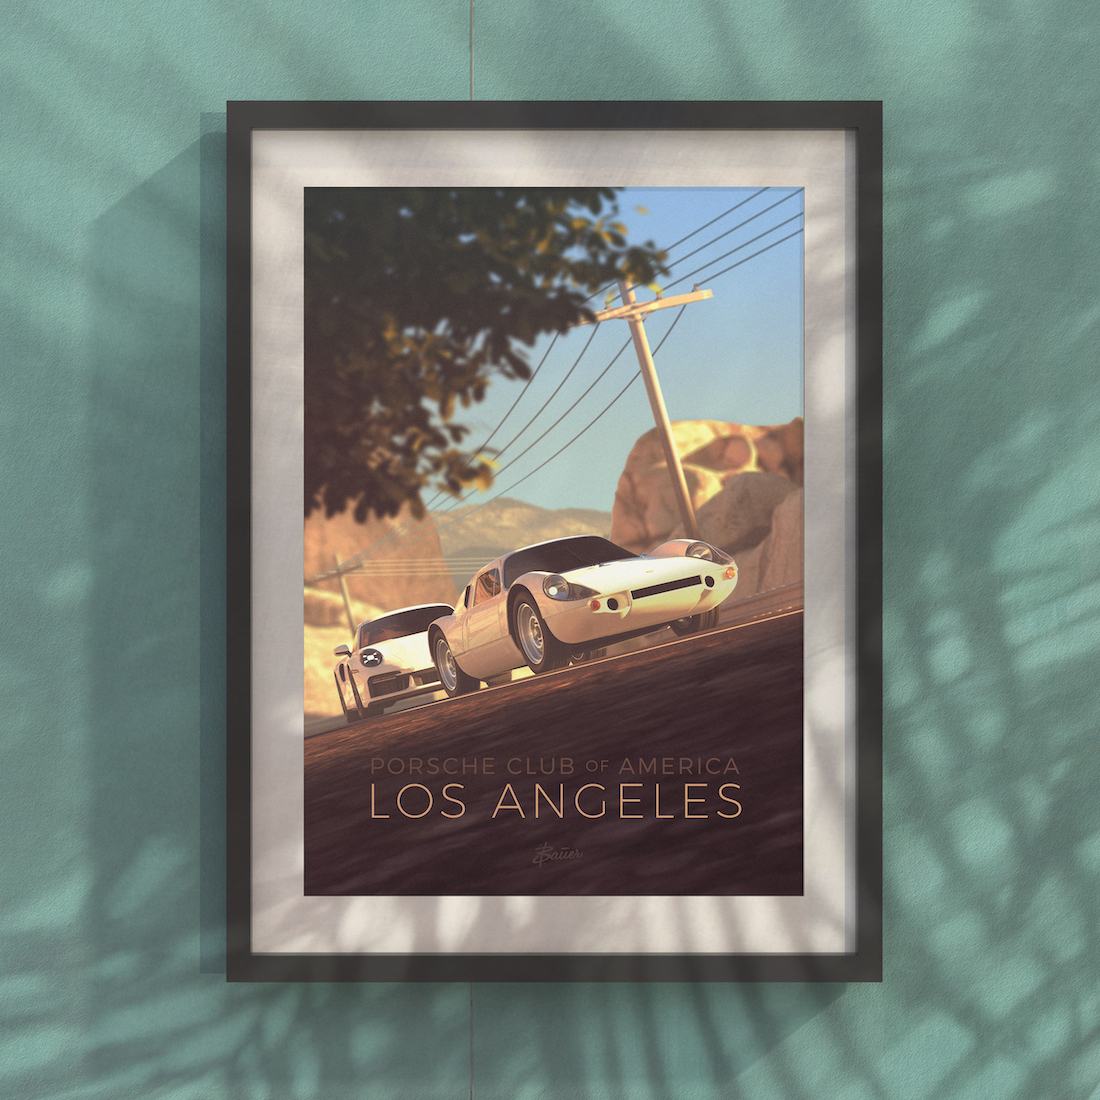 PCALA Canyon Poster - Limited Edition